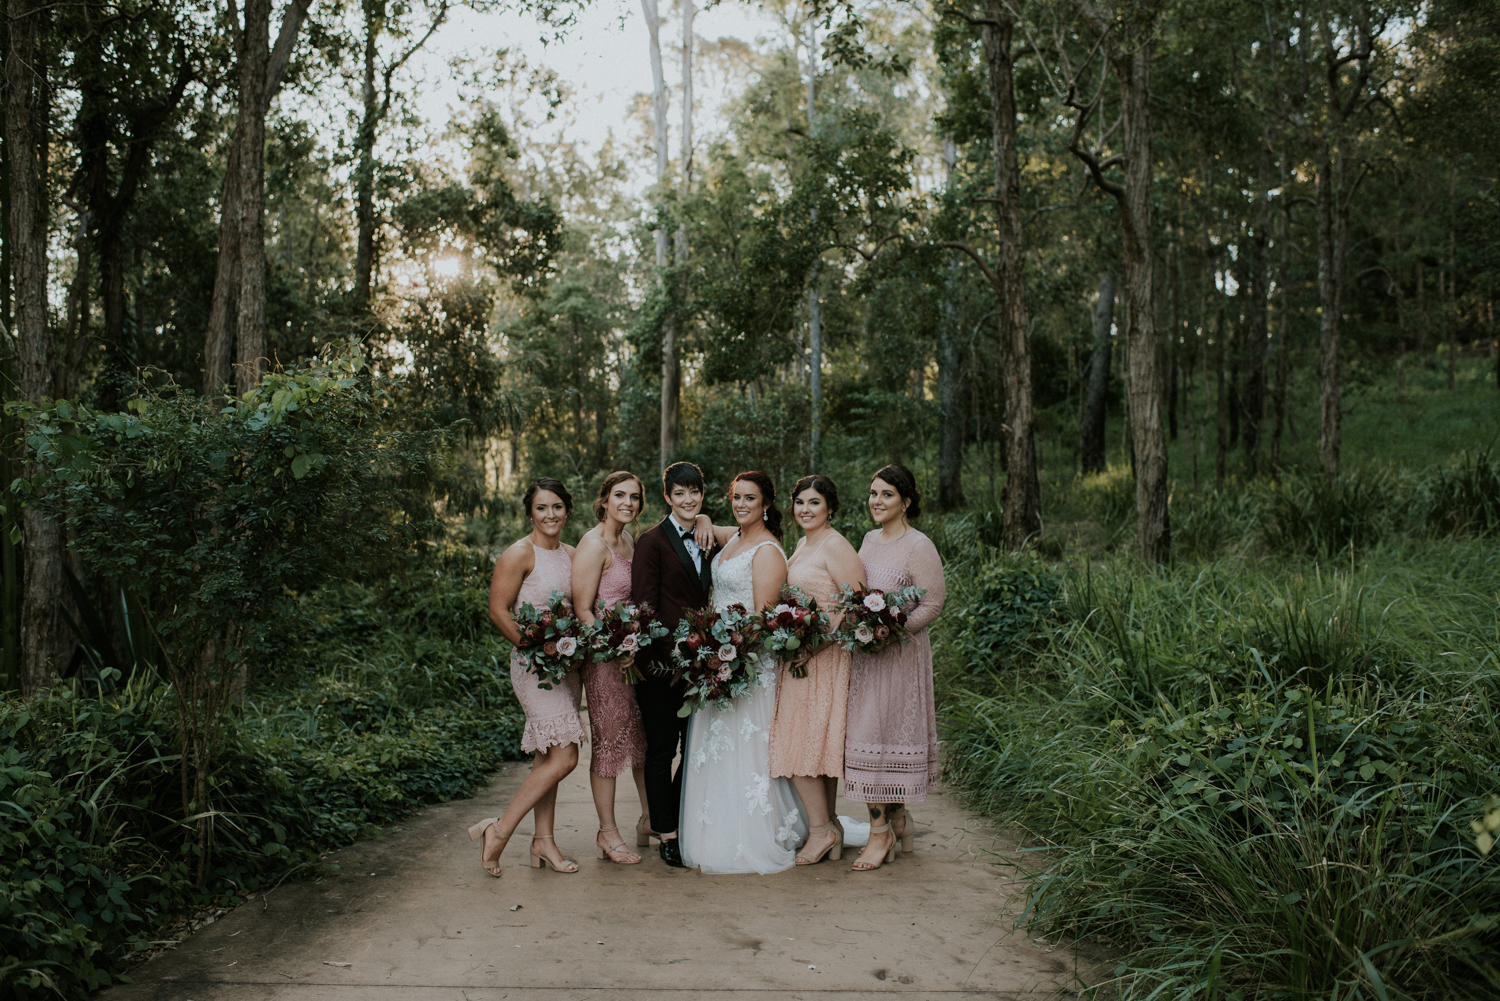 Brisbane Wedding Photographer | Walkabout Creek Photography-69.jpg